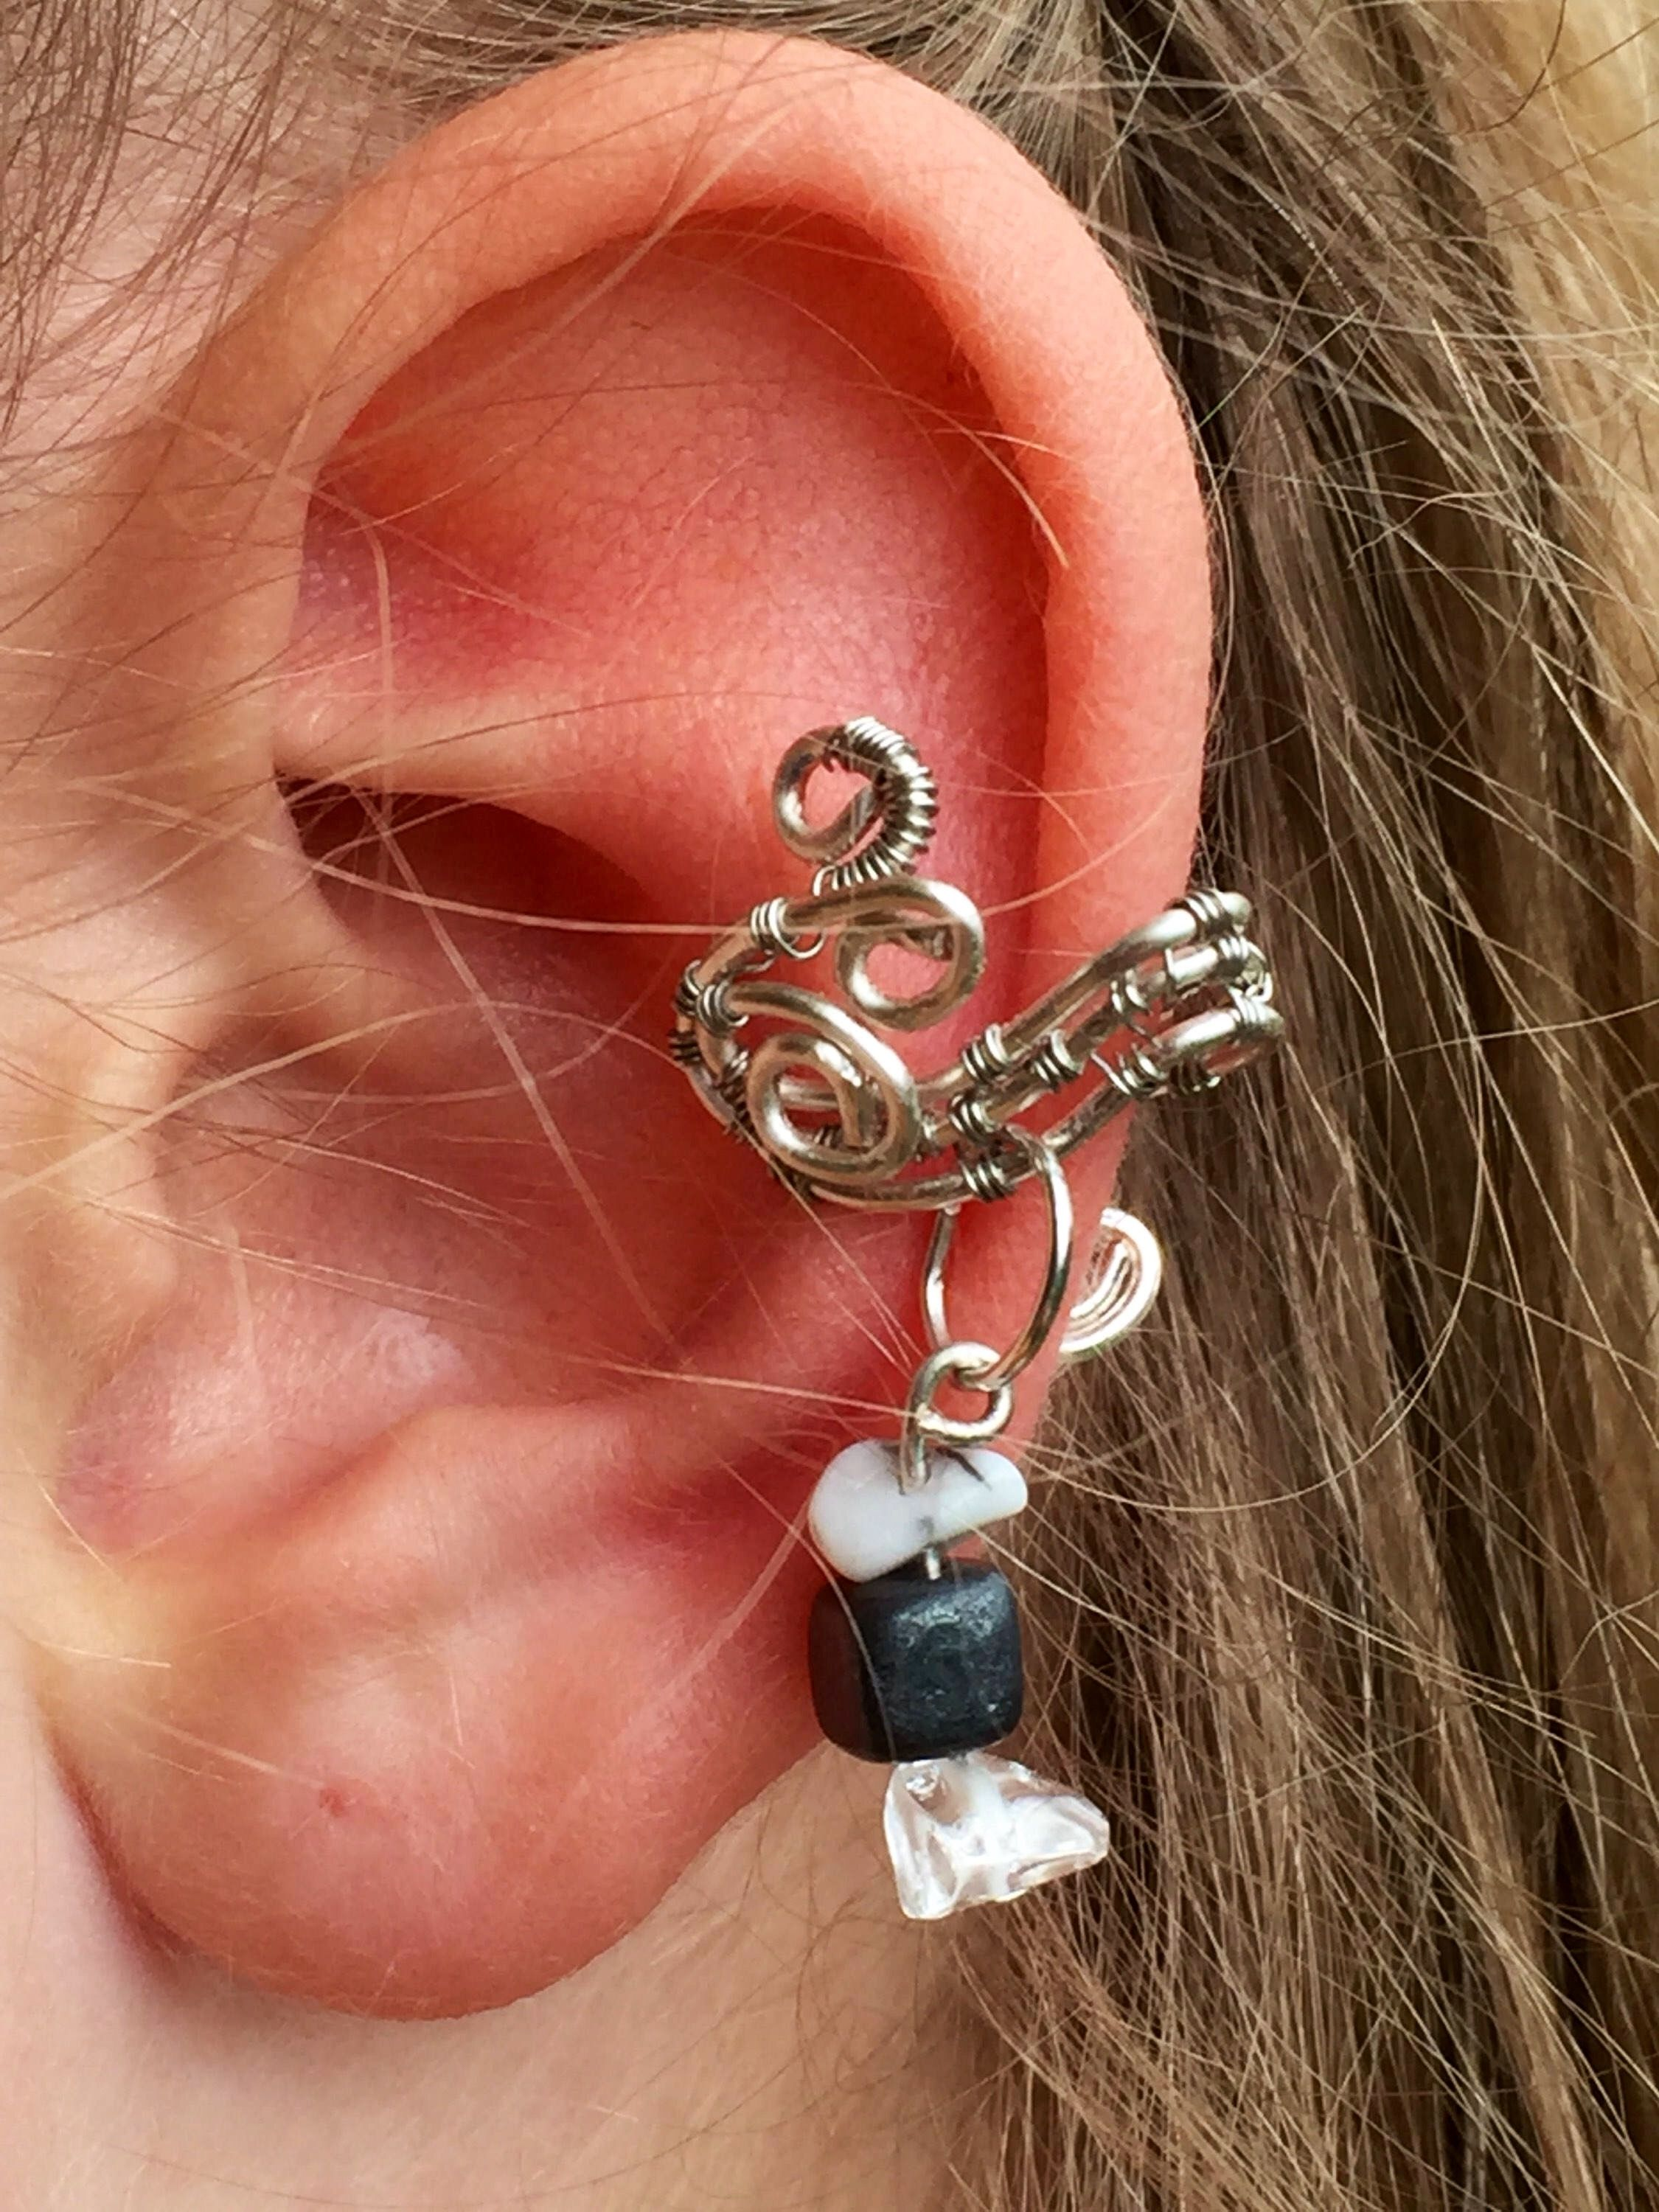 Nose and ear piercing  black and white ear cuff hematite white turquoise and smoky